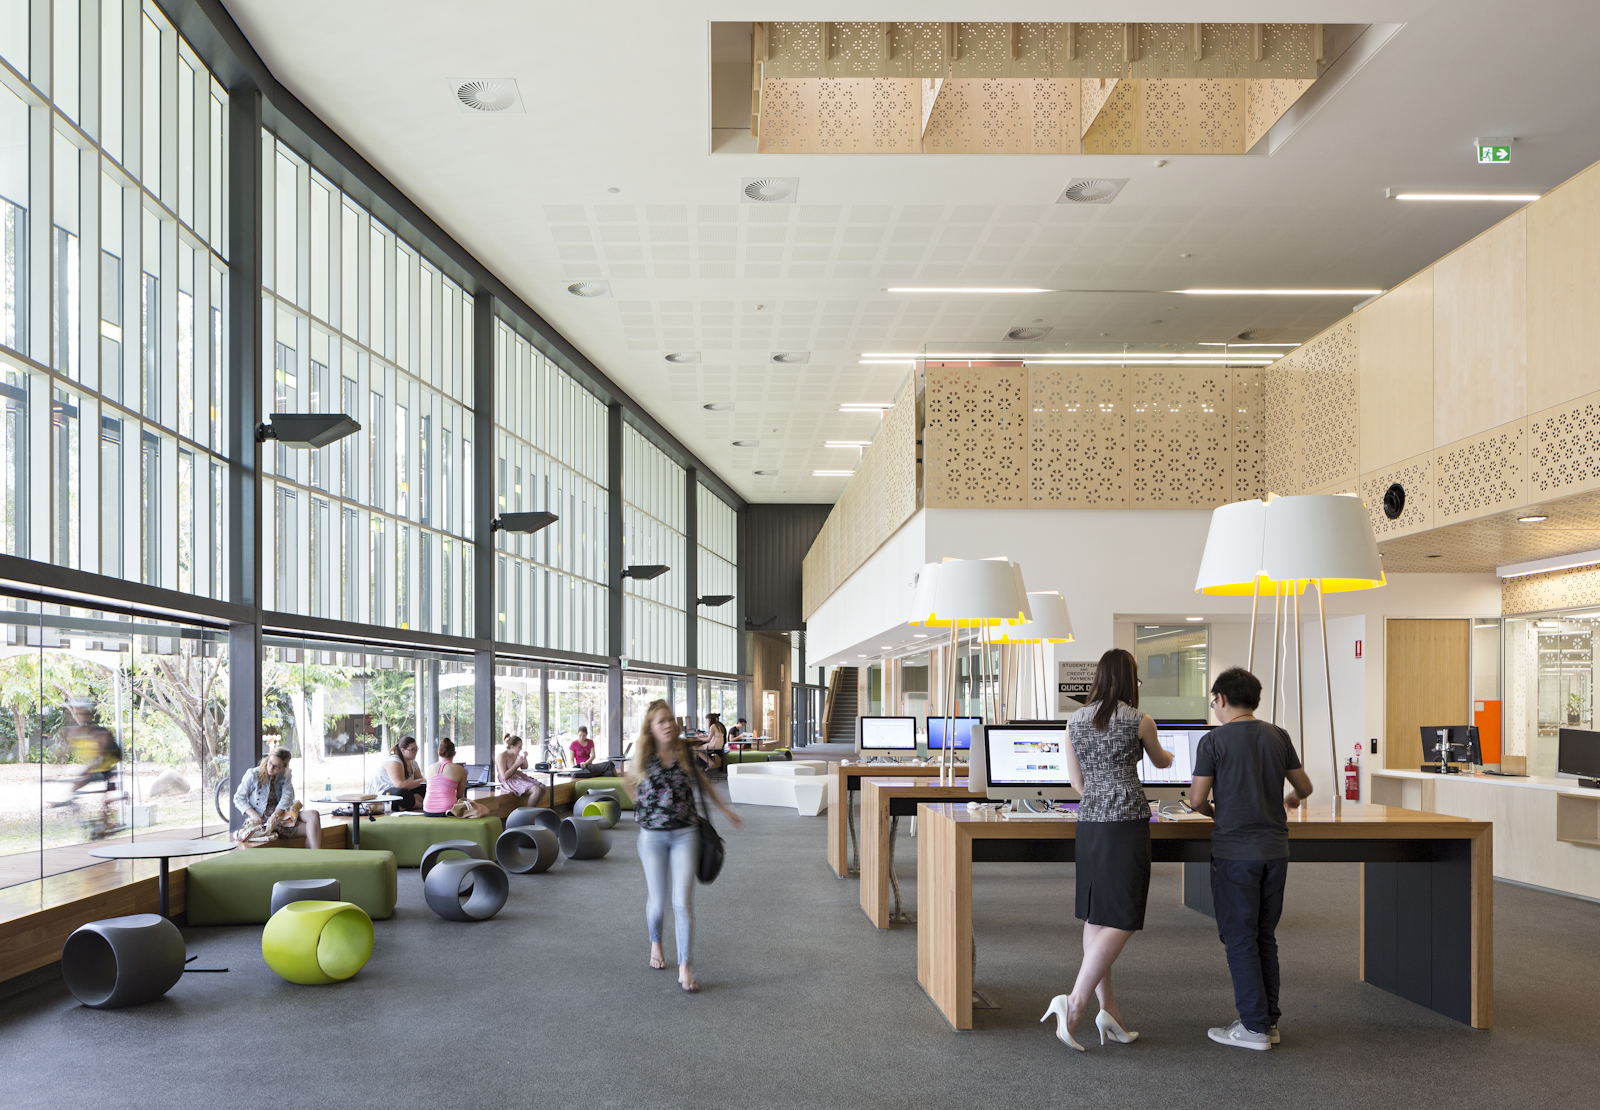 The Student Hub - Student services re-imagined as a flexible,dynamic space that can also be used as a social learning space in non peak times. A three metre fan enables airconditioning to operate at higher temperatures and reduce condensation on the facade.